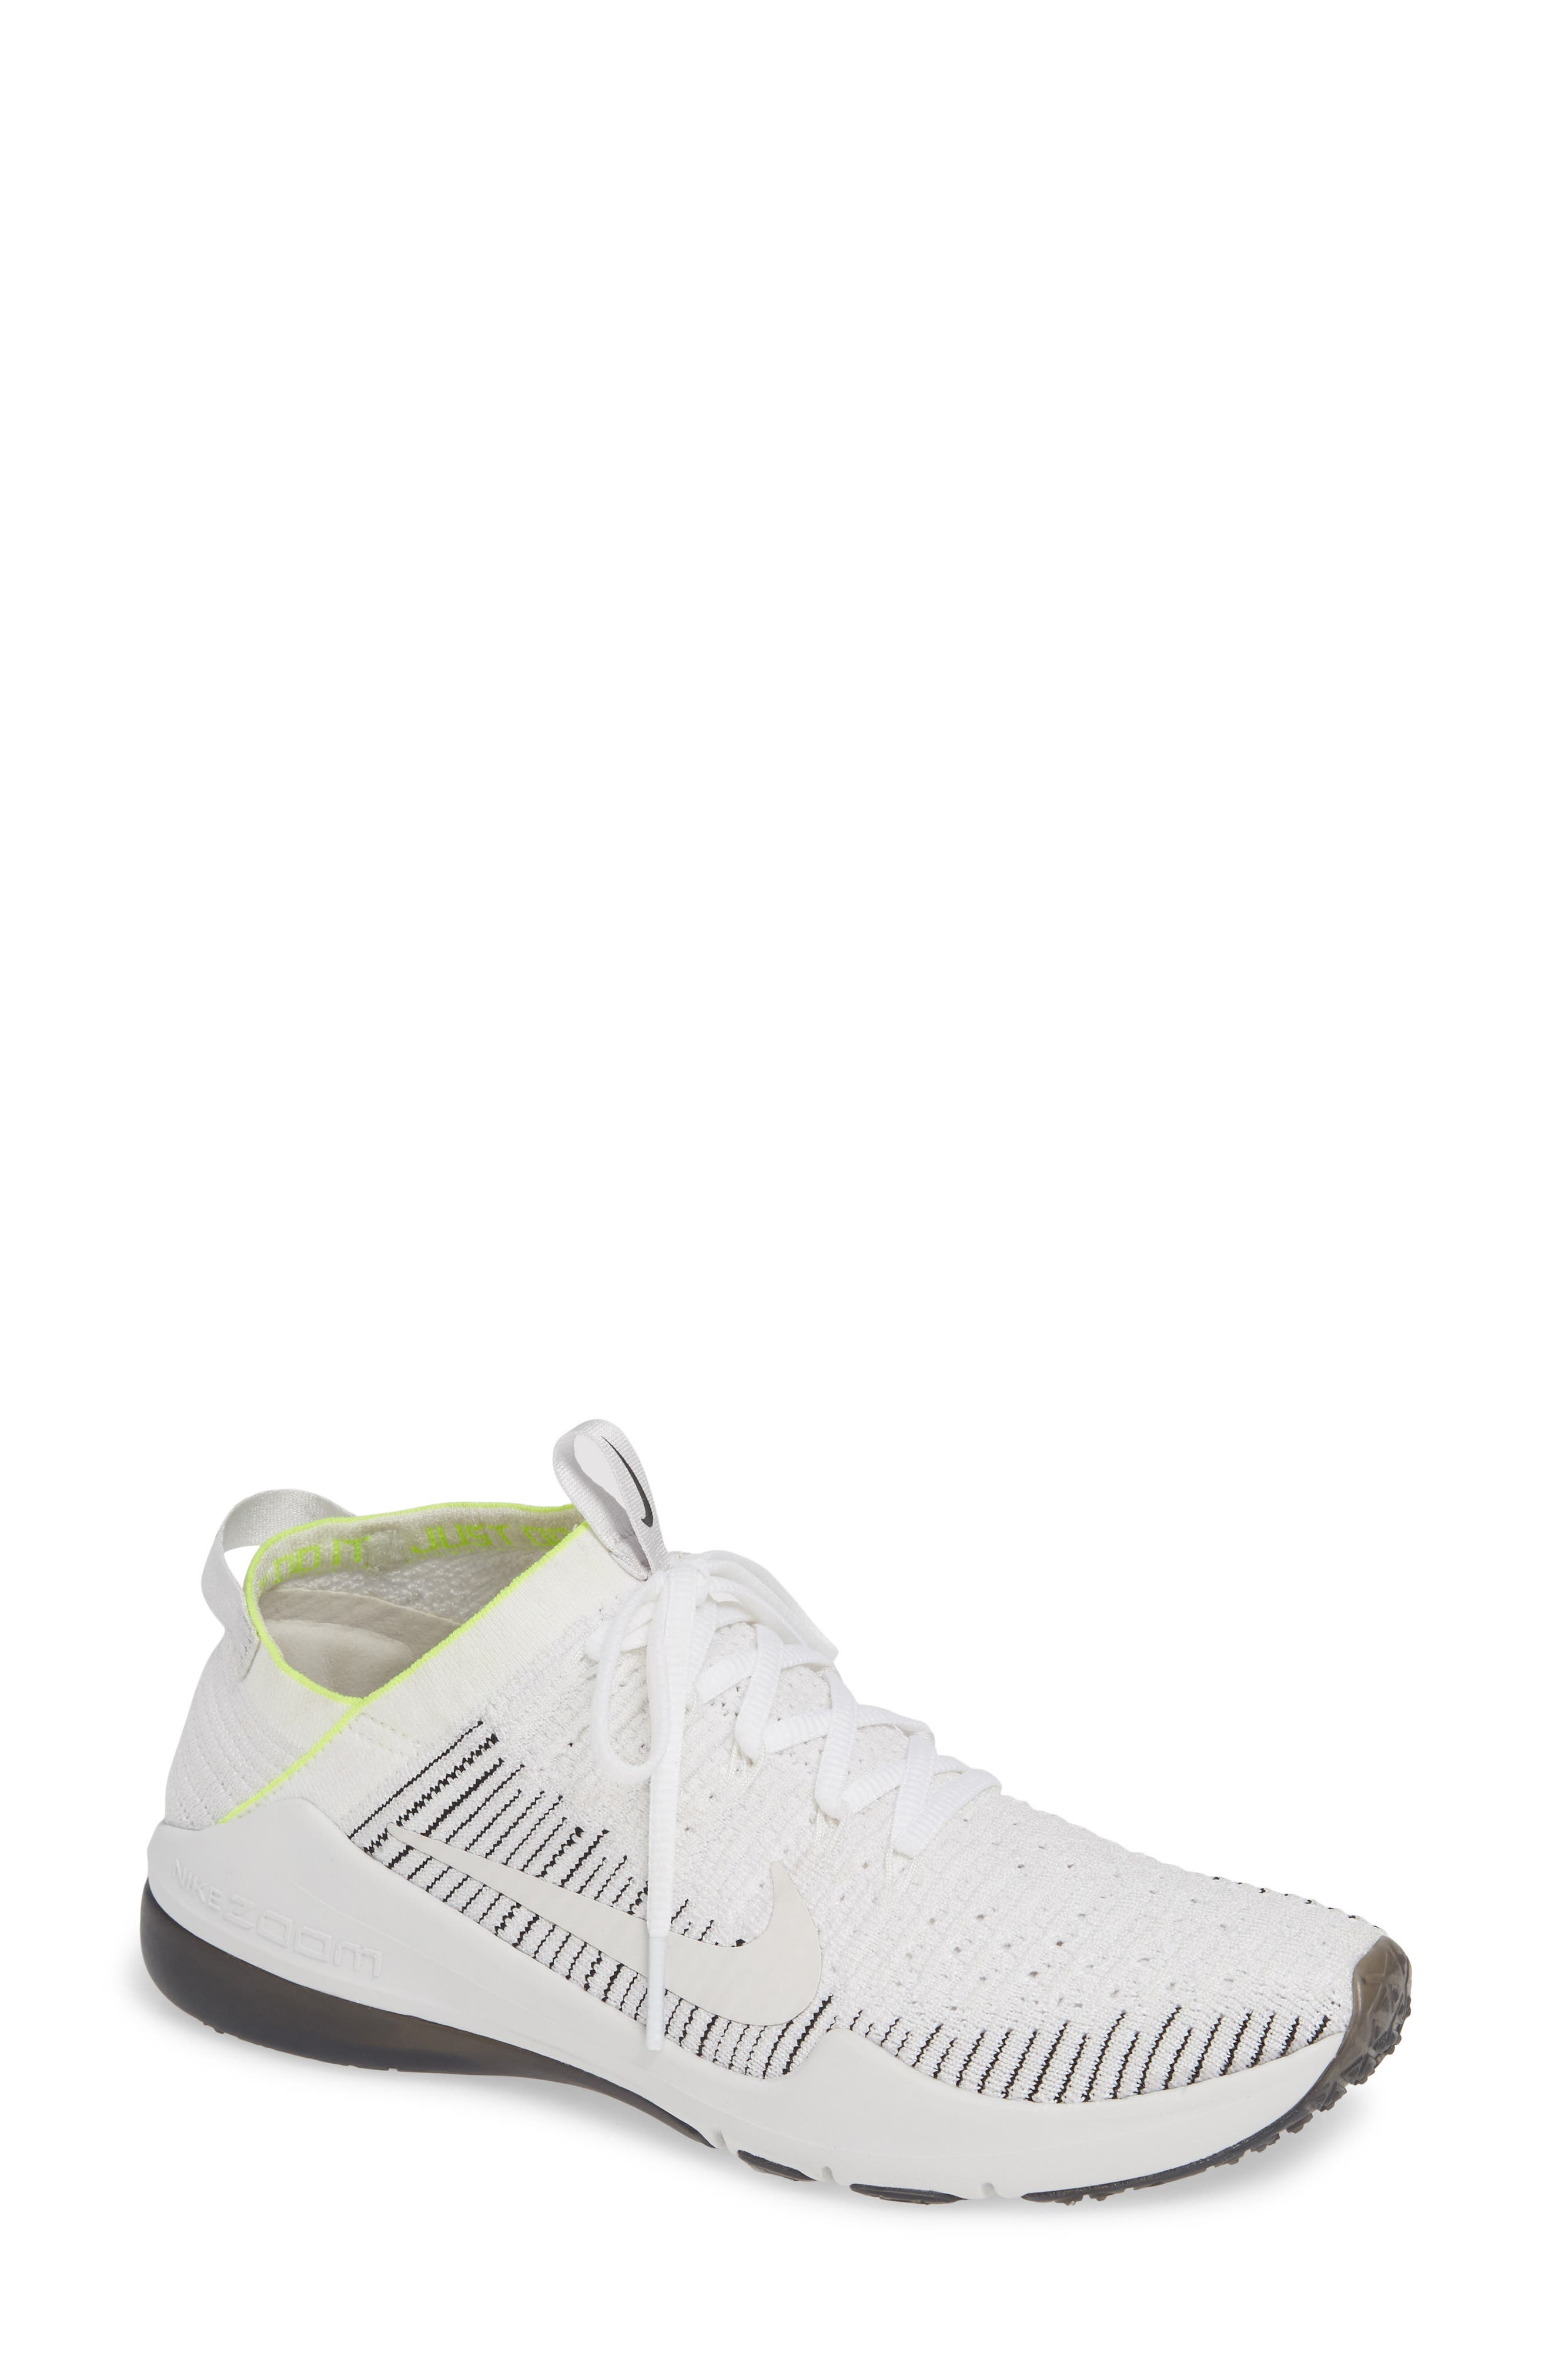 Air Zoom Fearless Flyknit 2 Training Sneaker,                             Main thumbnail 1, color,                             WHITE/ PLATINUM TINT/ BLACK